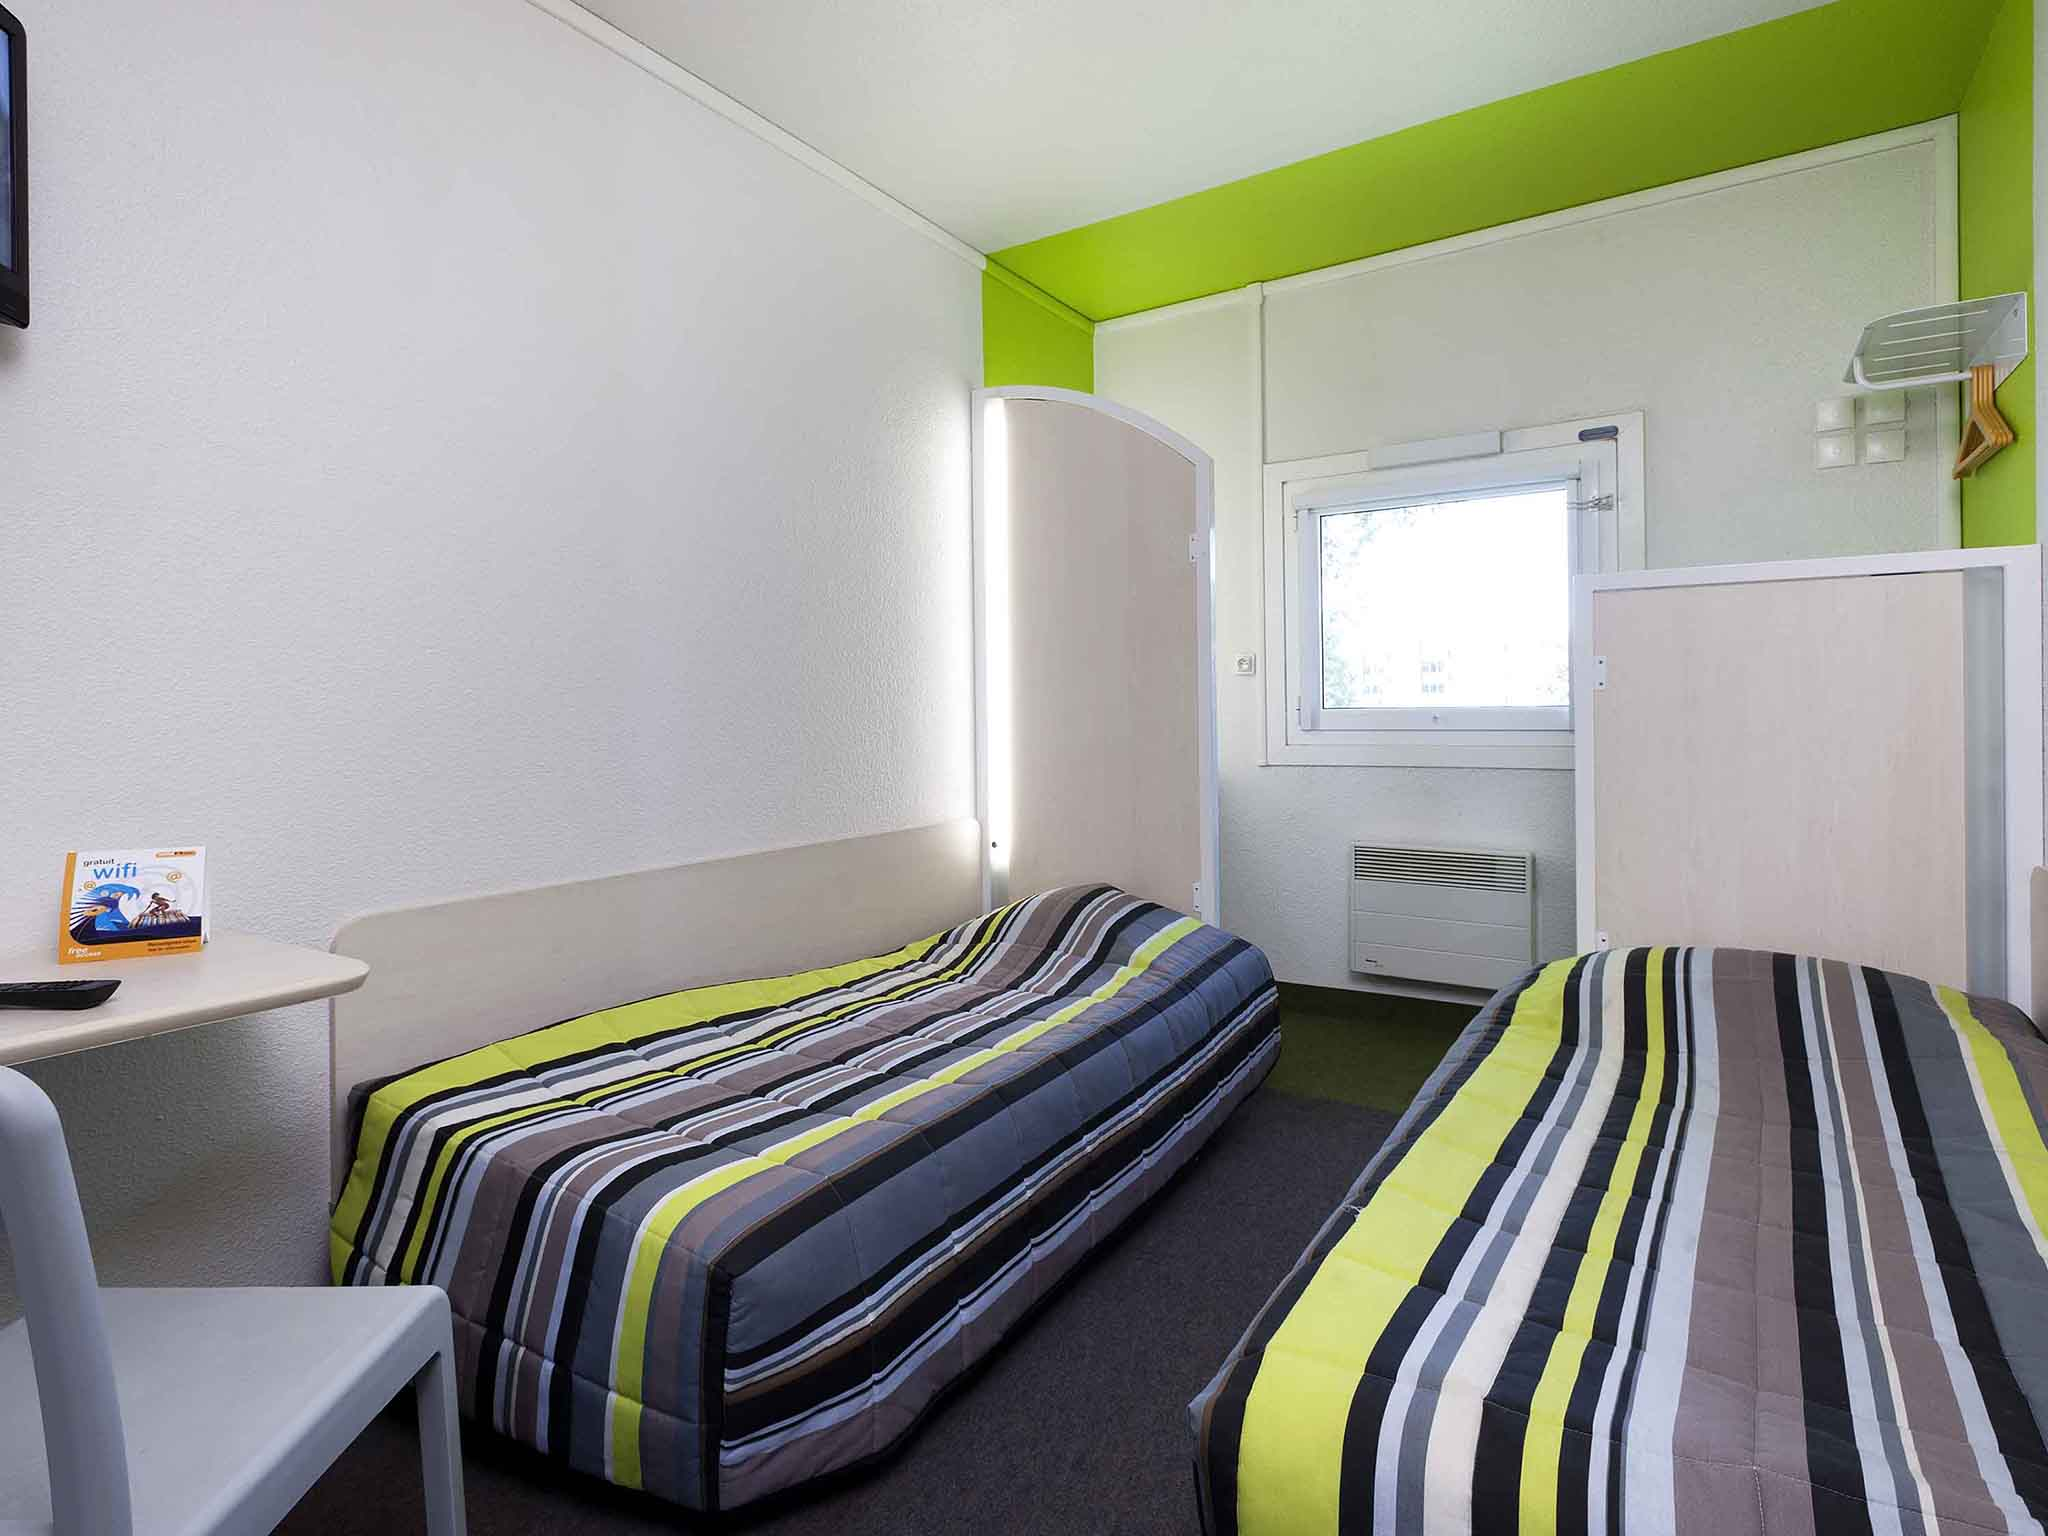 Hotel – hotelF1 Angers Ouest Beaucouze